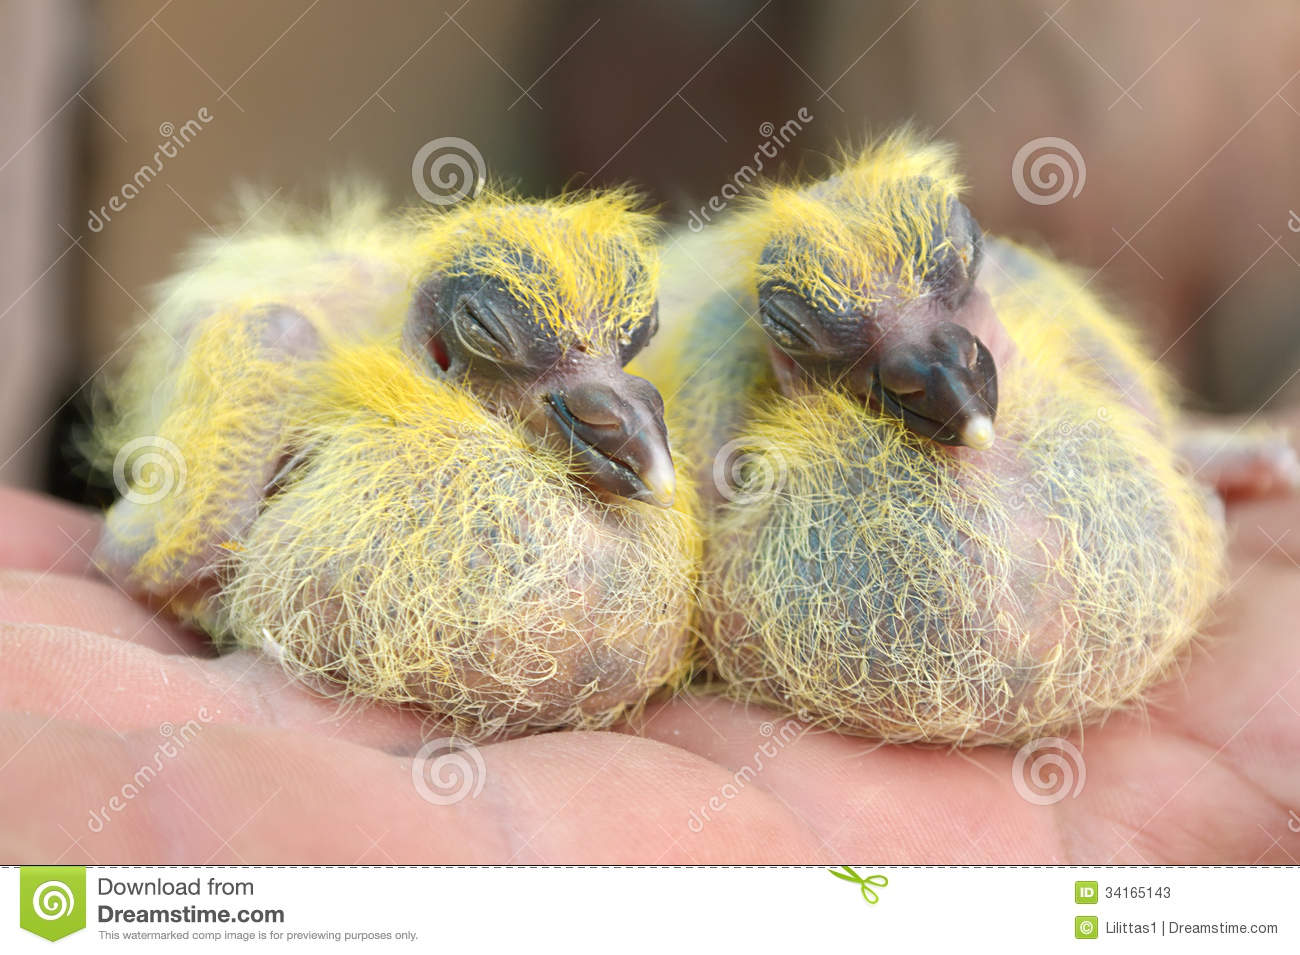 Couple Pigeon Nestlings Baby Cheeper Sitting On Hand Stock